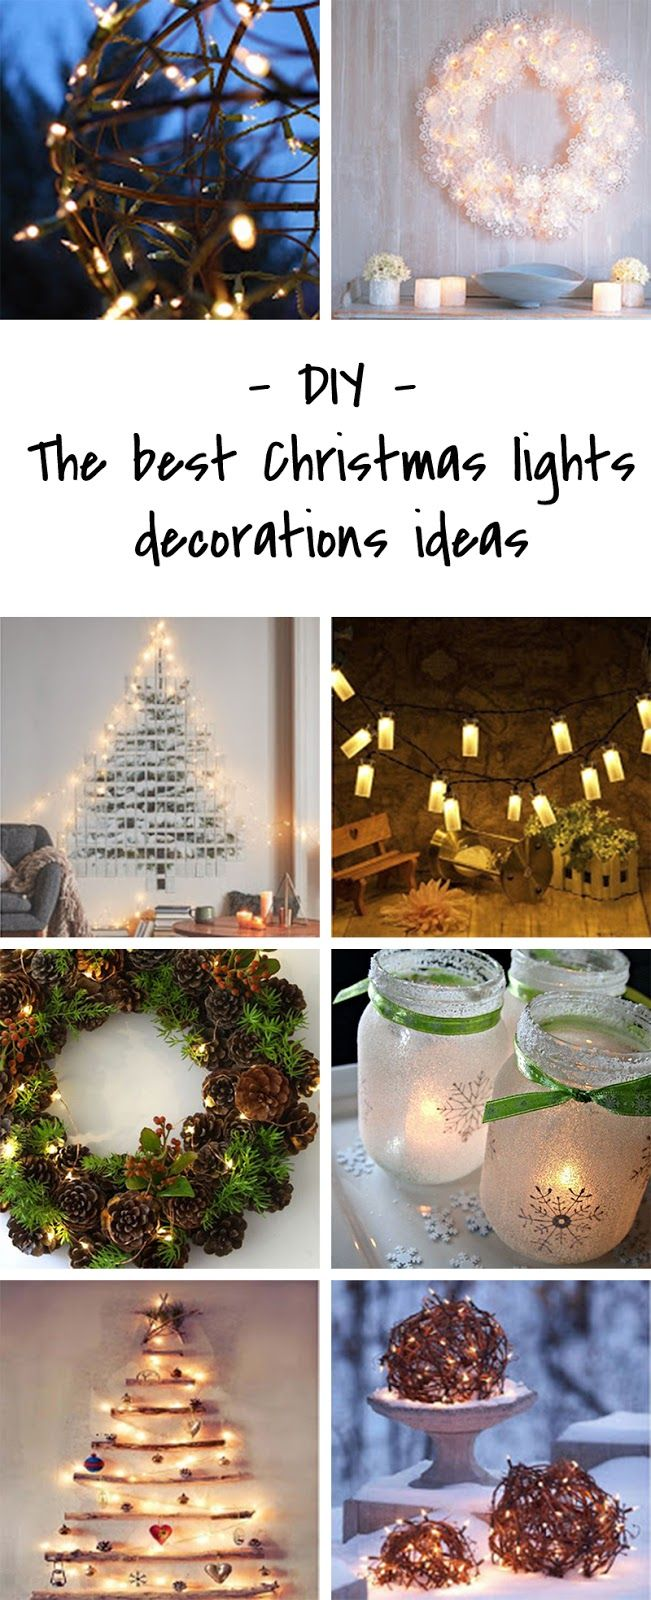 Simple and stylish Christmas lights decoration ideas